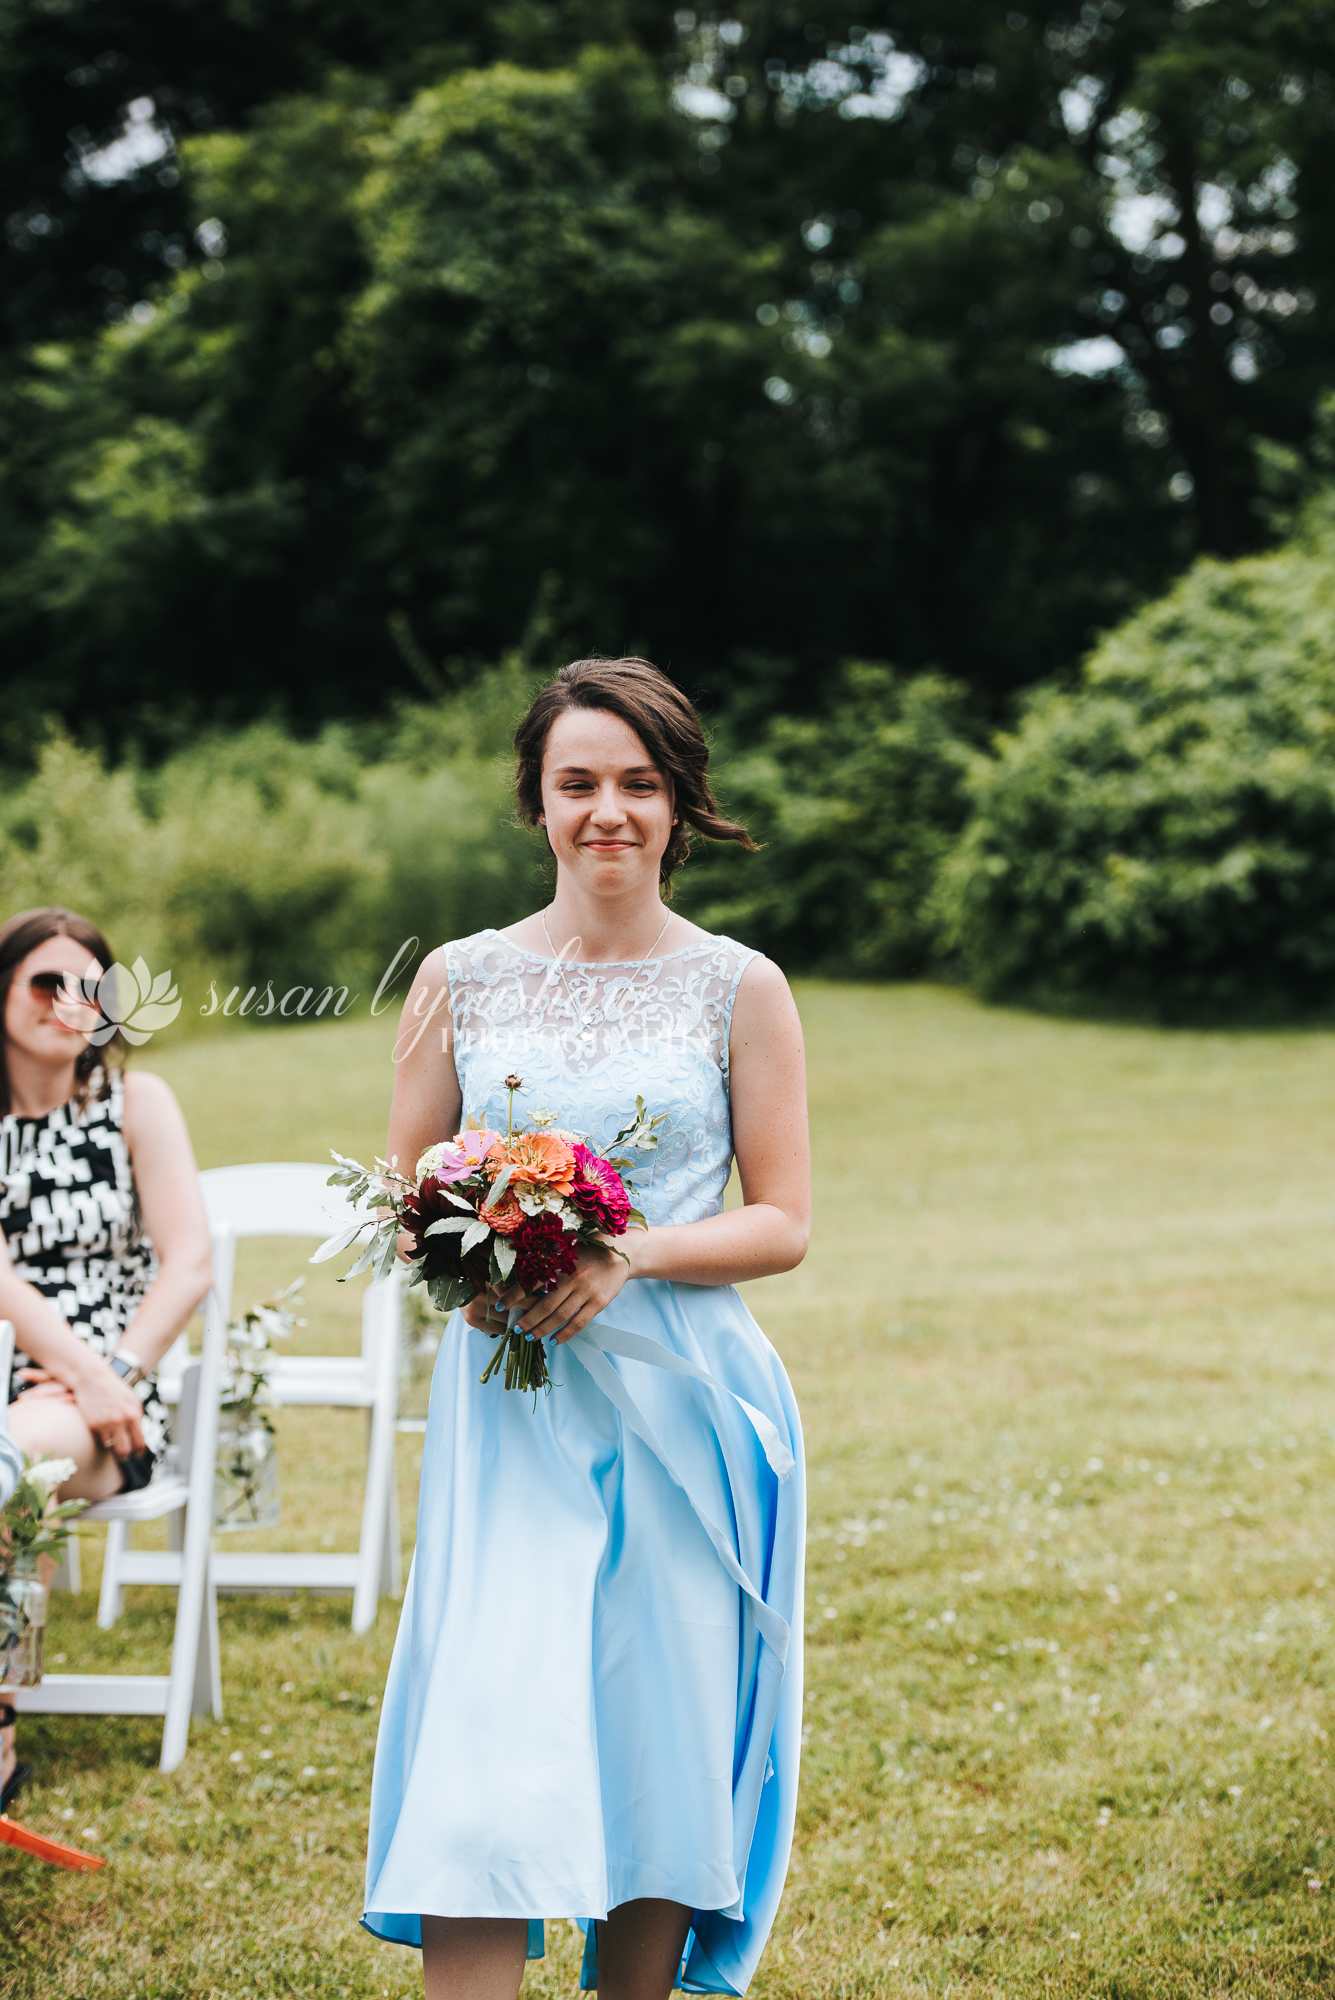 Erin and Jason Wedding Photos 07-06-2019 SLY Photography-84.jpg